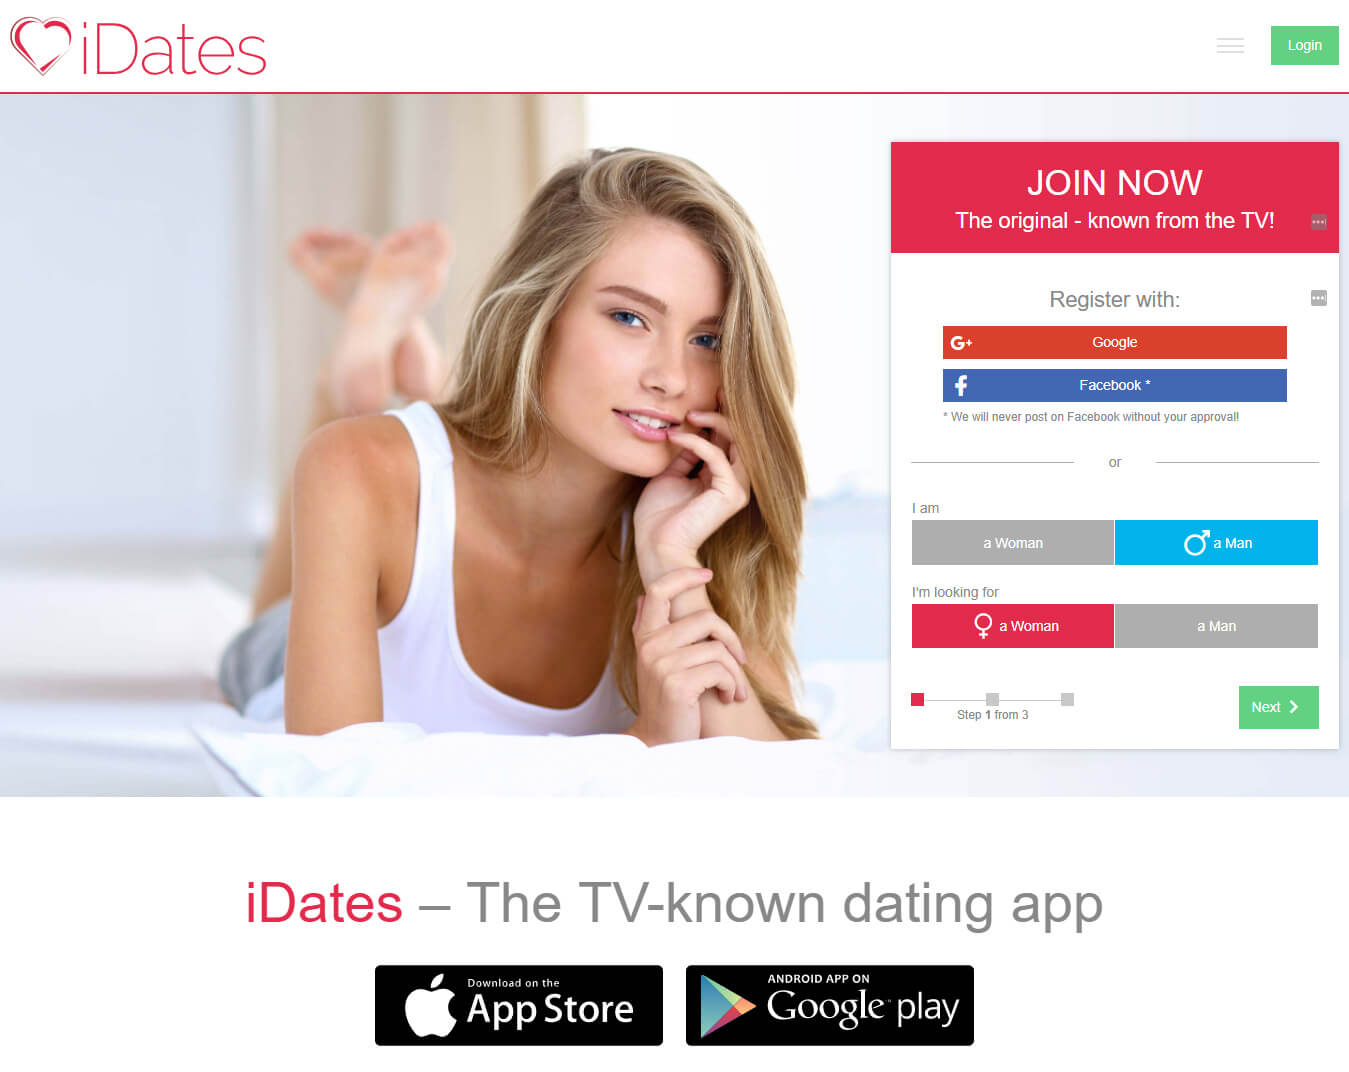 iDates Signup